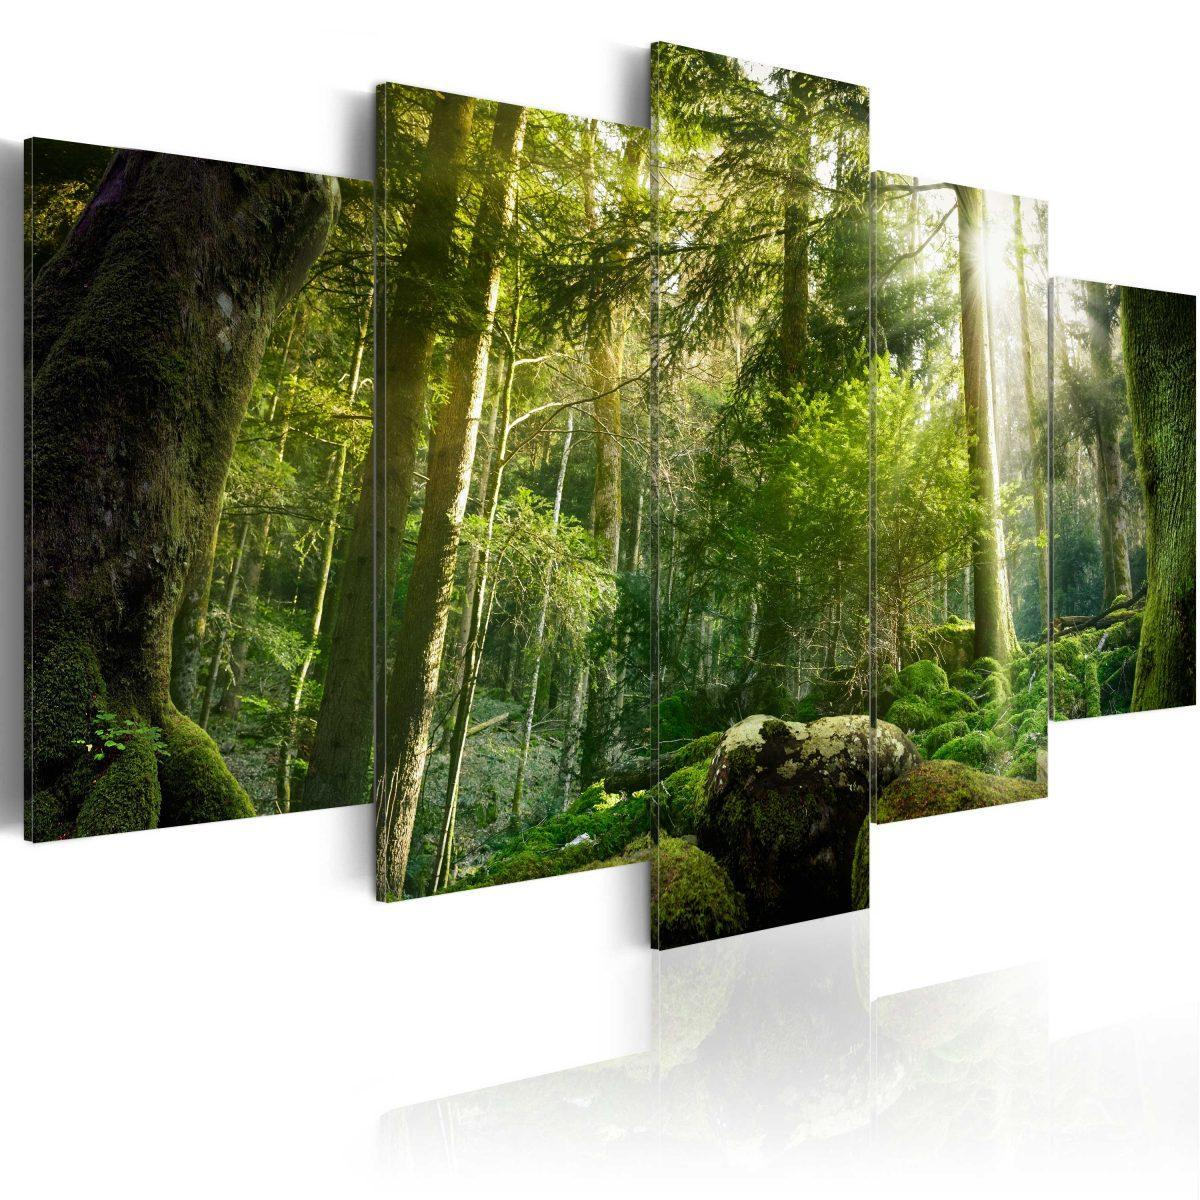 Canvas Tavla - The Beauty of the Forest - 100x50